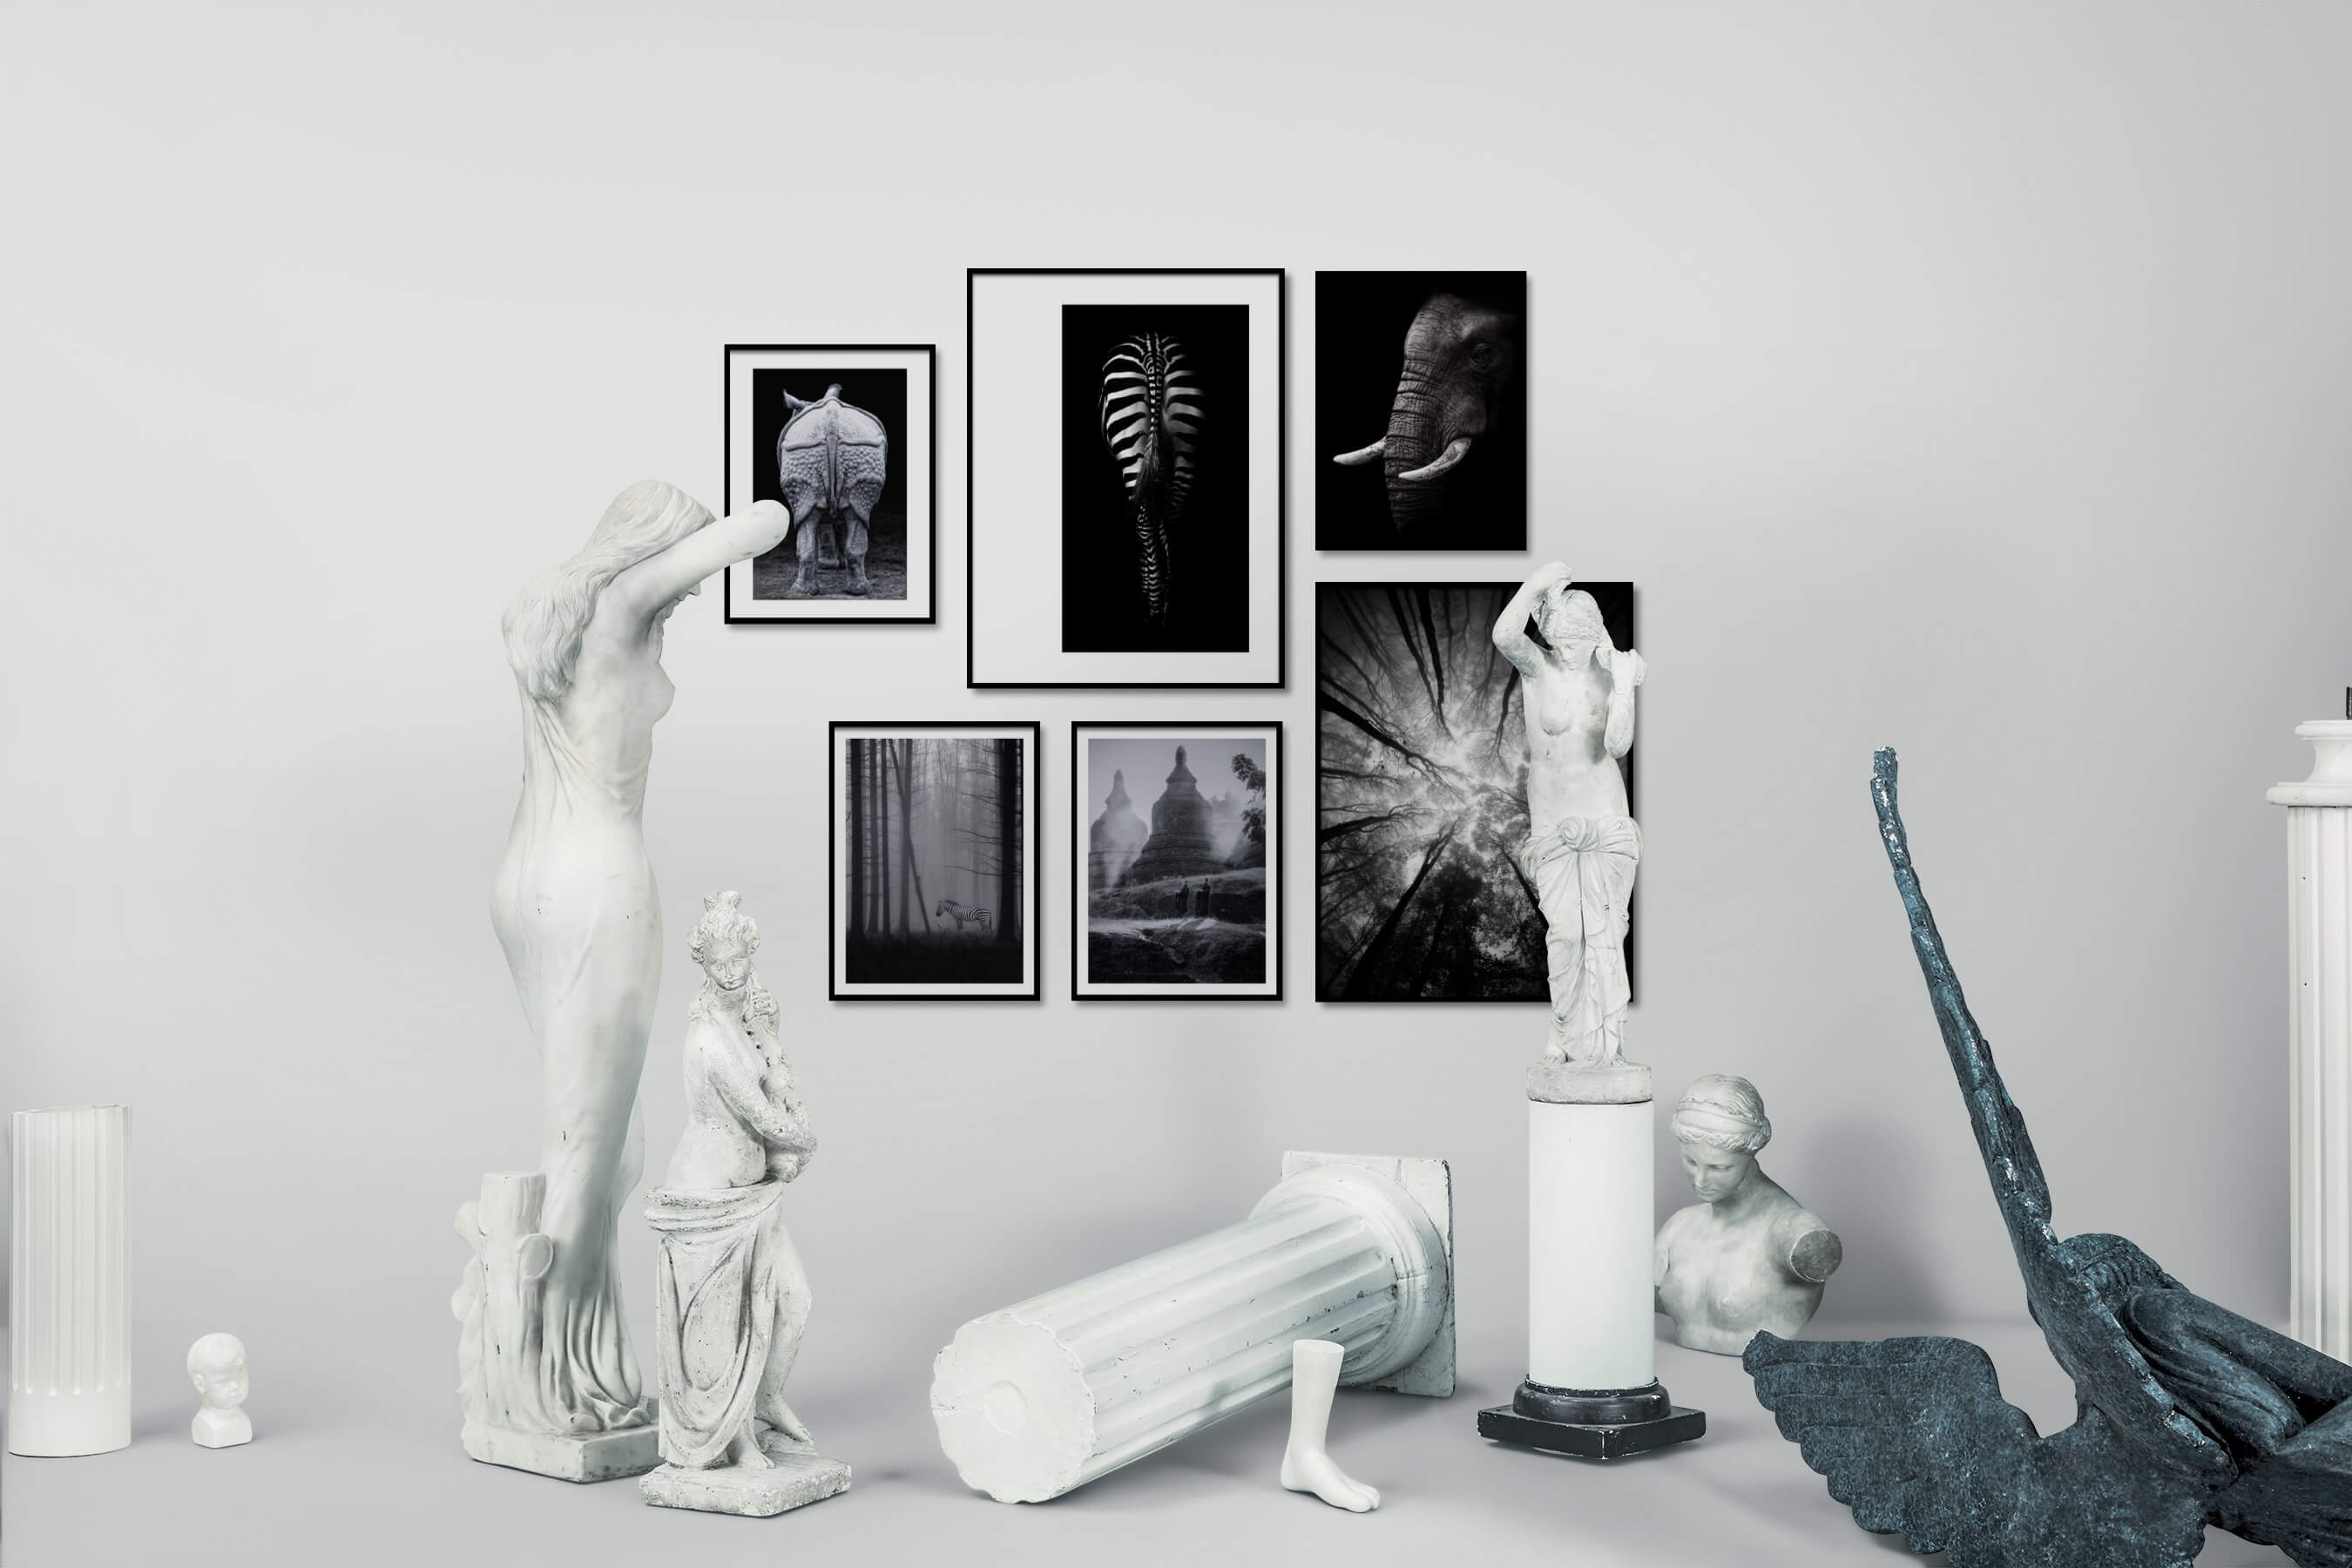 Gallery wall idea with six framed pictures arranged on a wall depicting Black & White, For the Moderate, Animals, For the Minimalist, Nature, Mindfulness, and Dark Tones